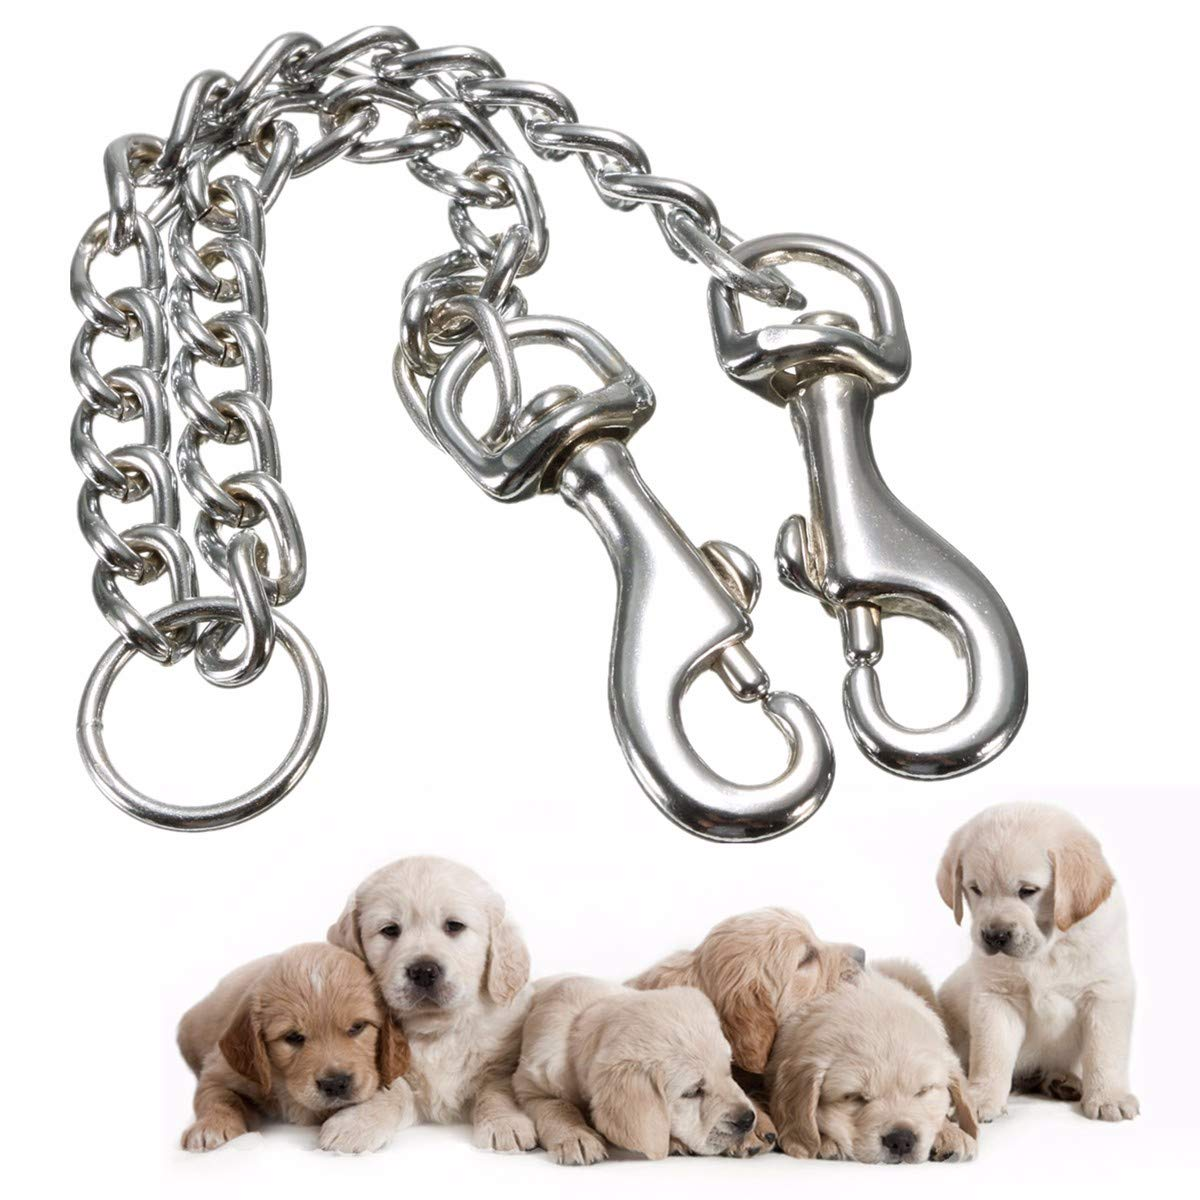 WCHAOEN Stainless Double Headed Dog Traction Rope Pet Coupler Twin Lead Bite Resistant Pet Chain Accessories Tool by WCHAOEN